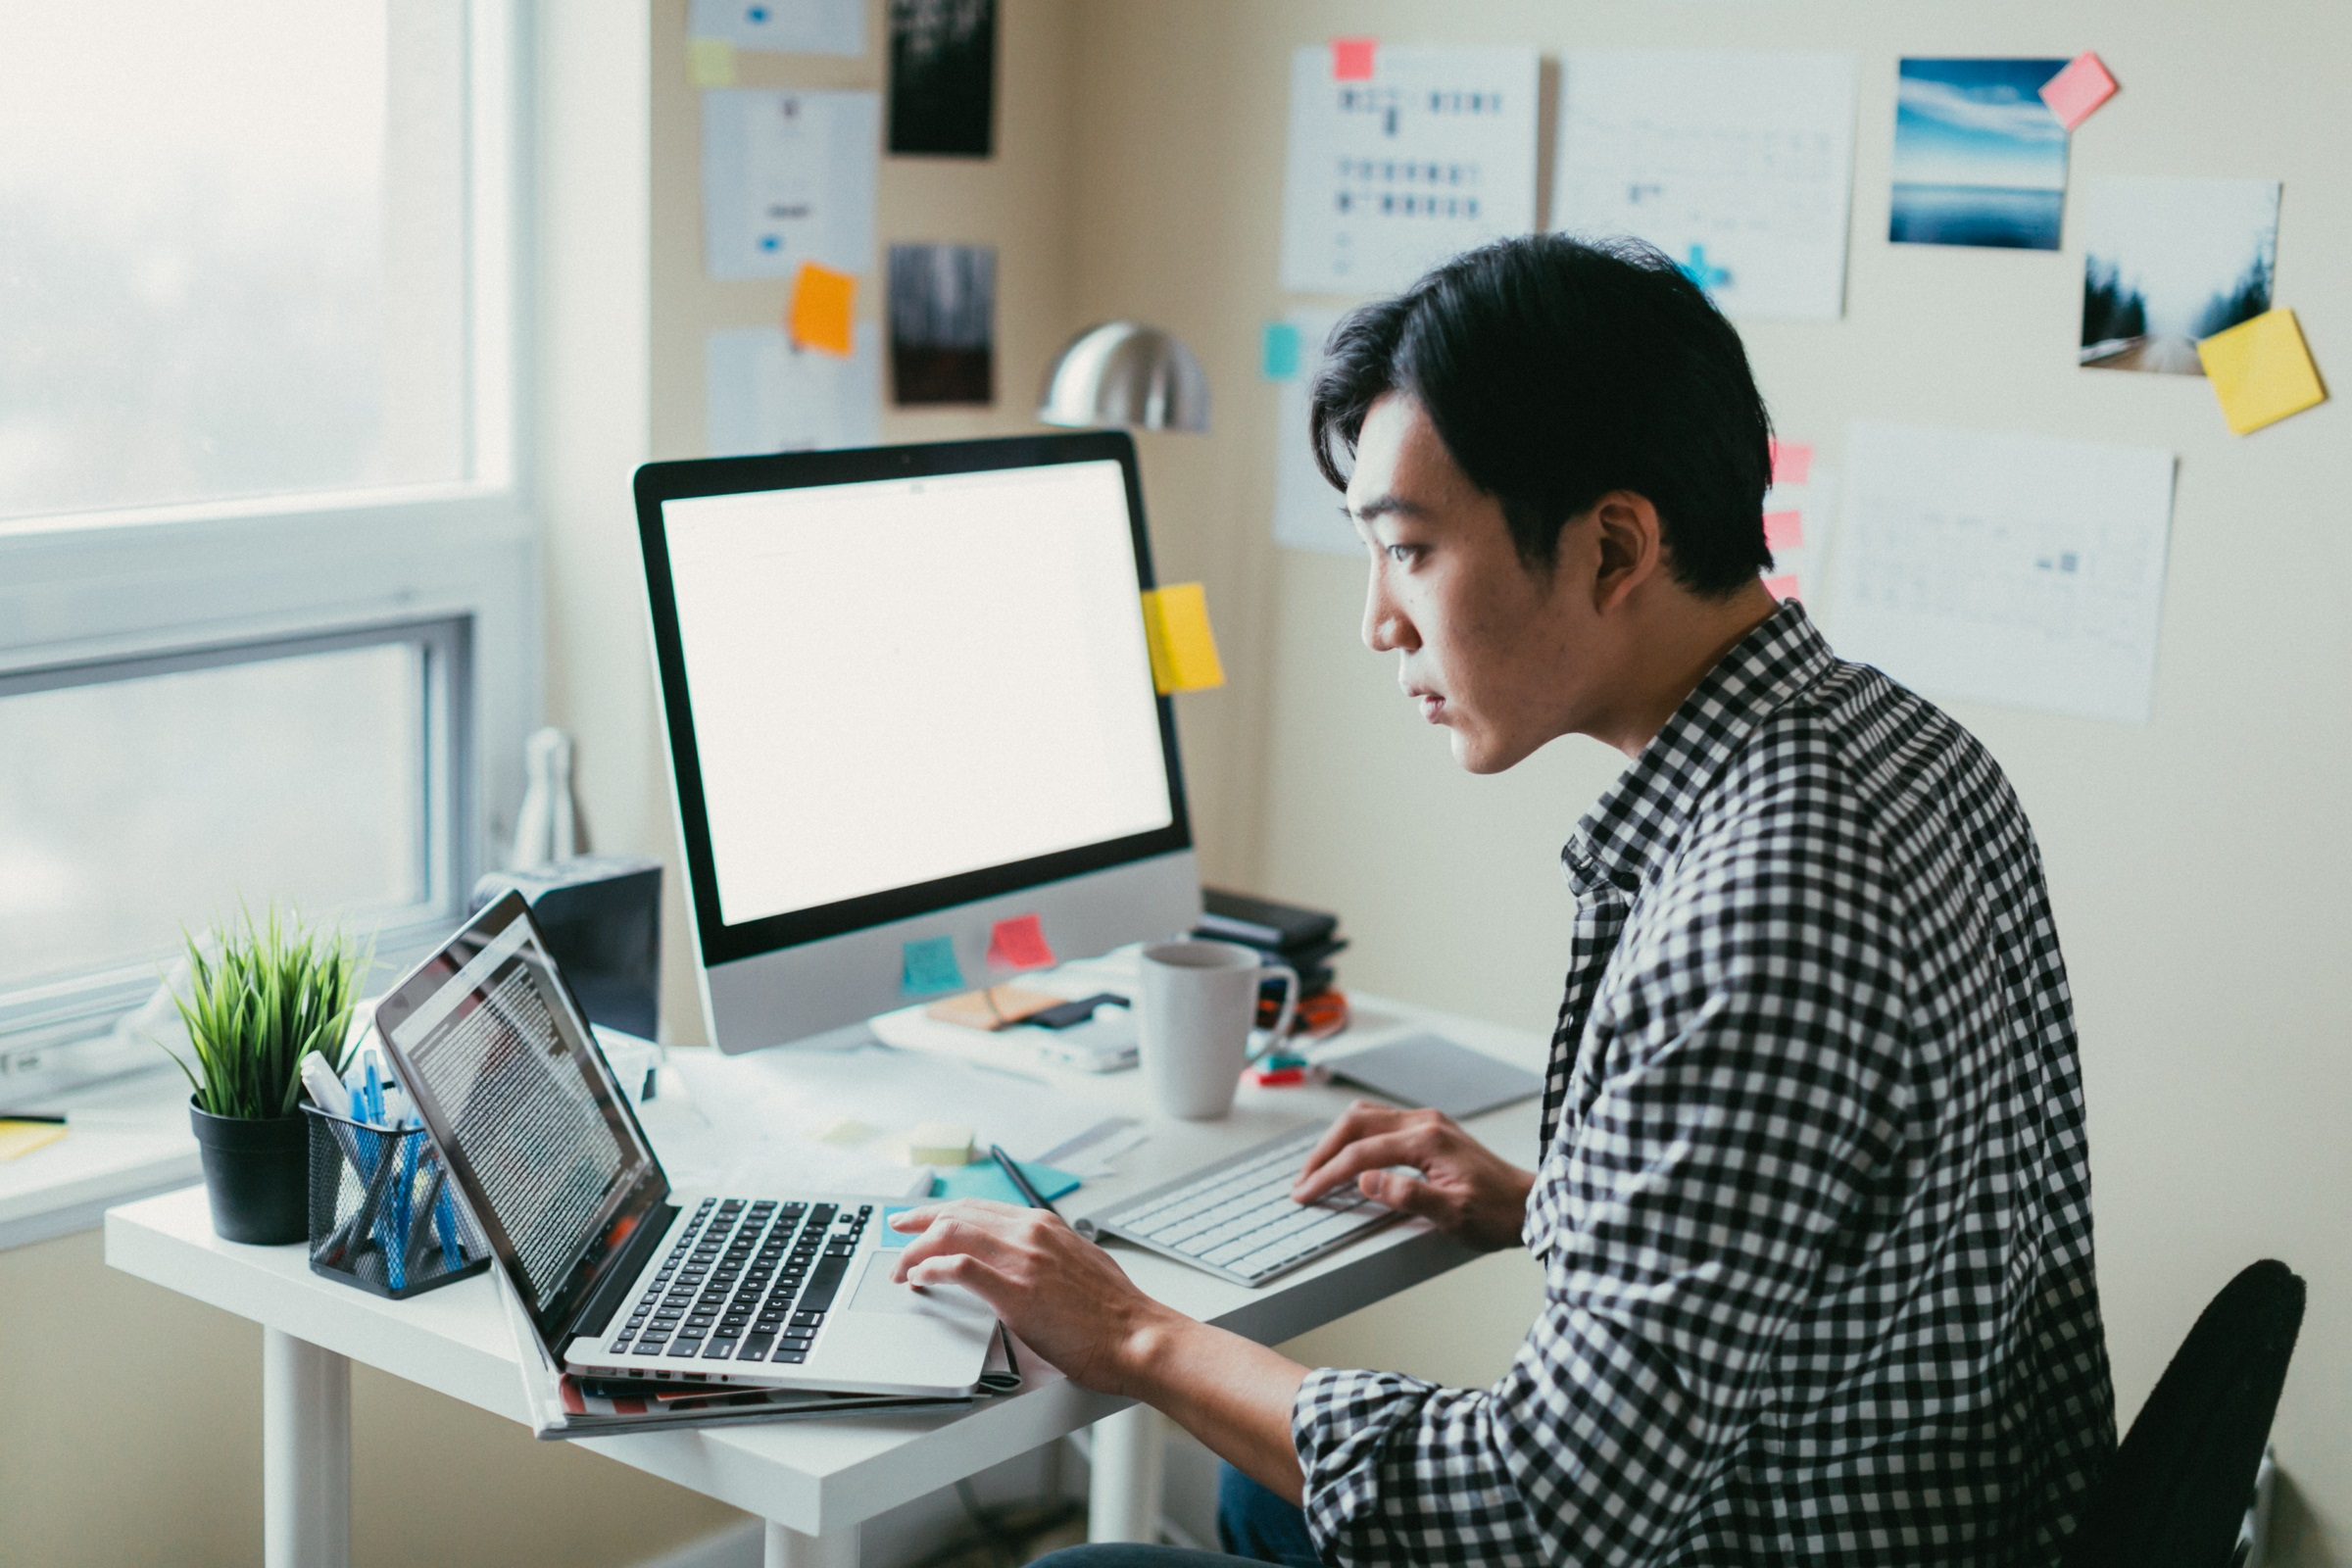 UOB, VMware to enable safe and effective remote working in the new normal